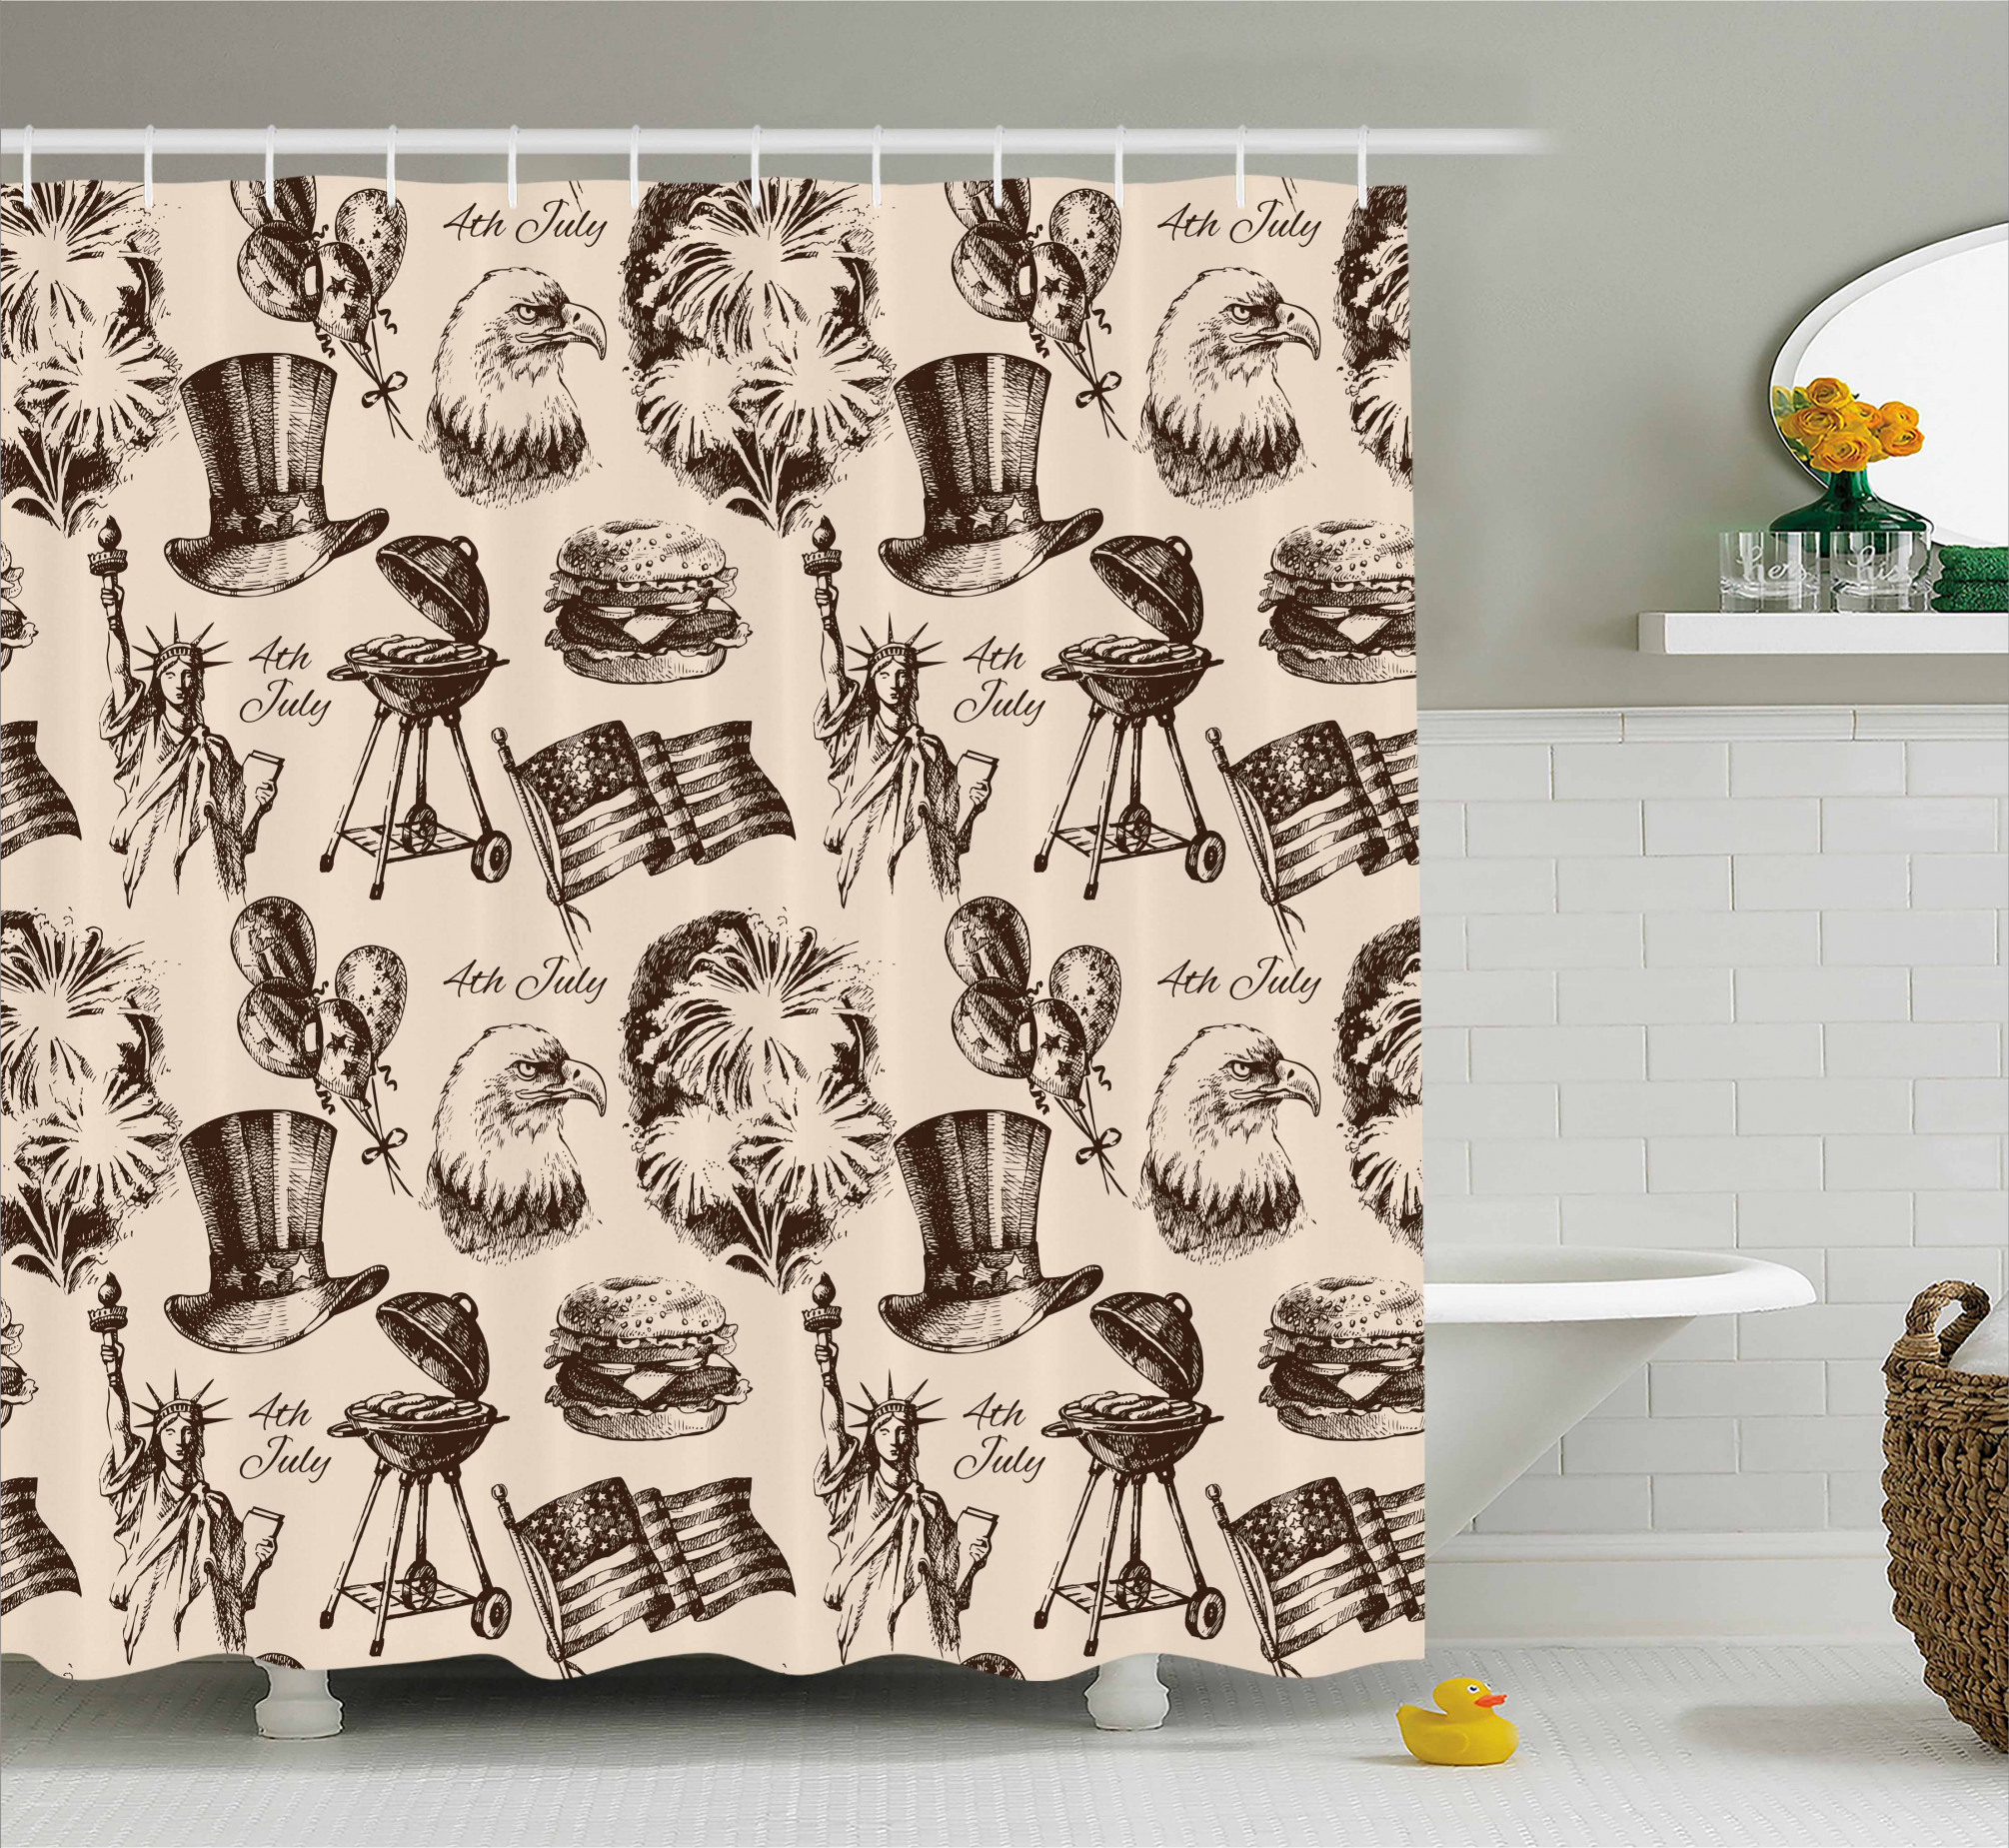 3990 Vintage Americana Shower Curtain